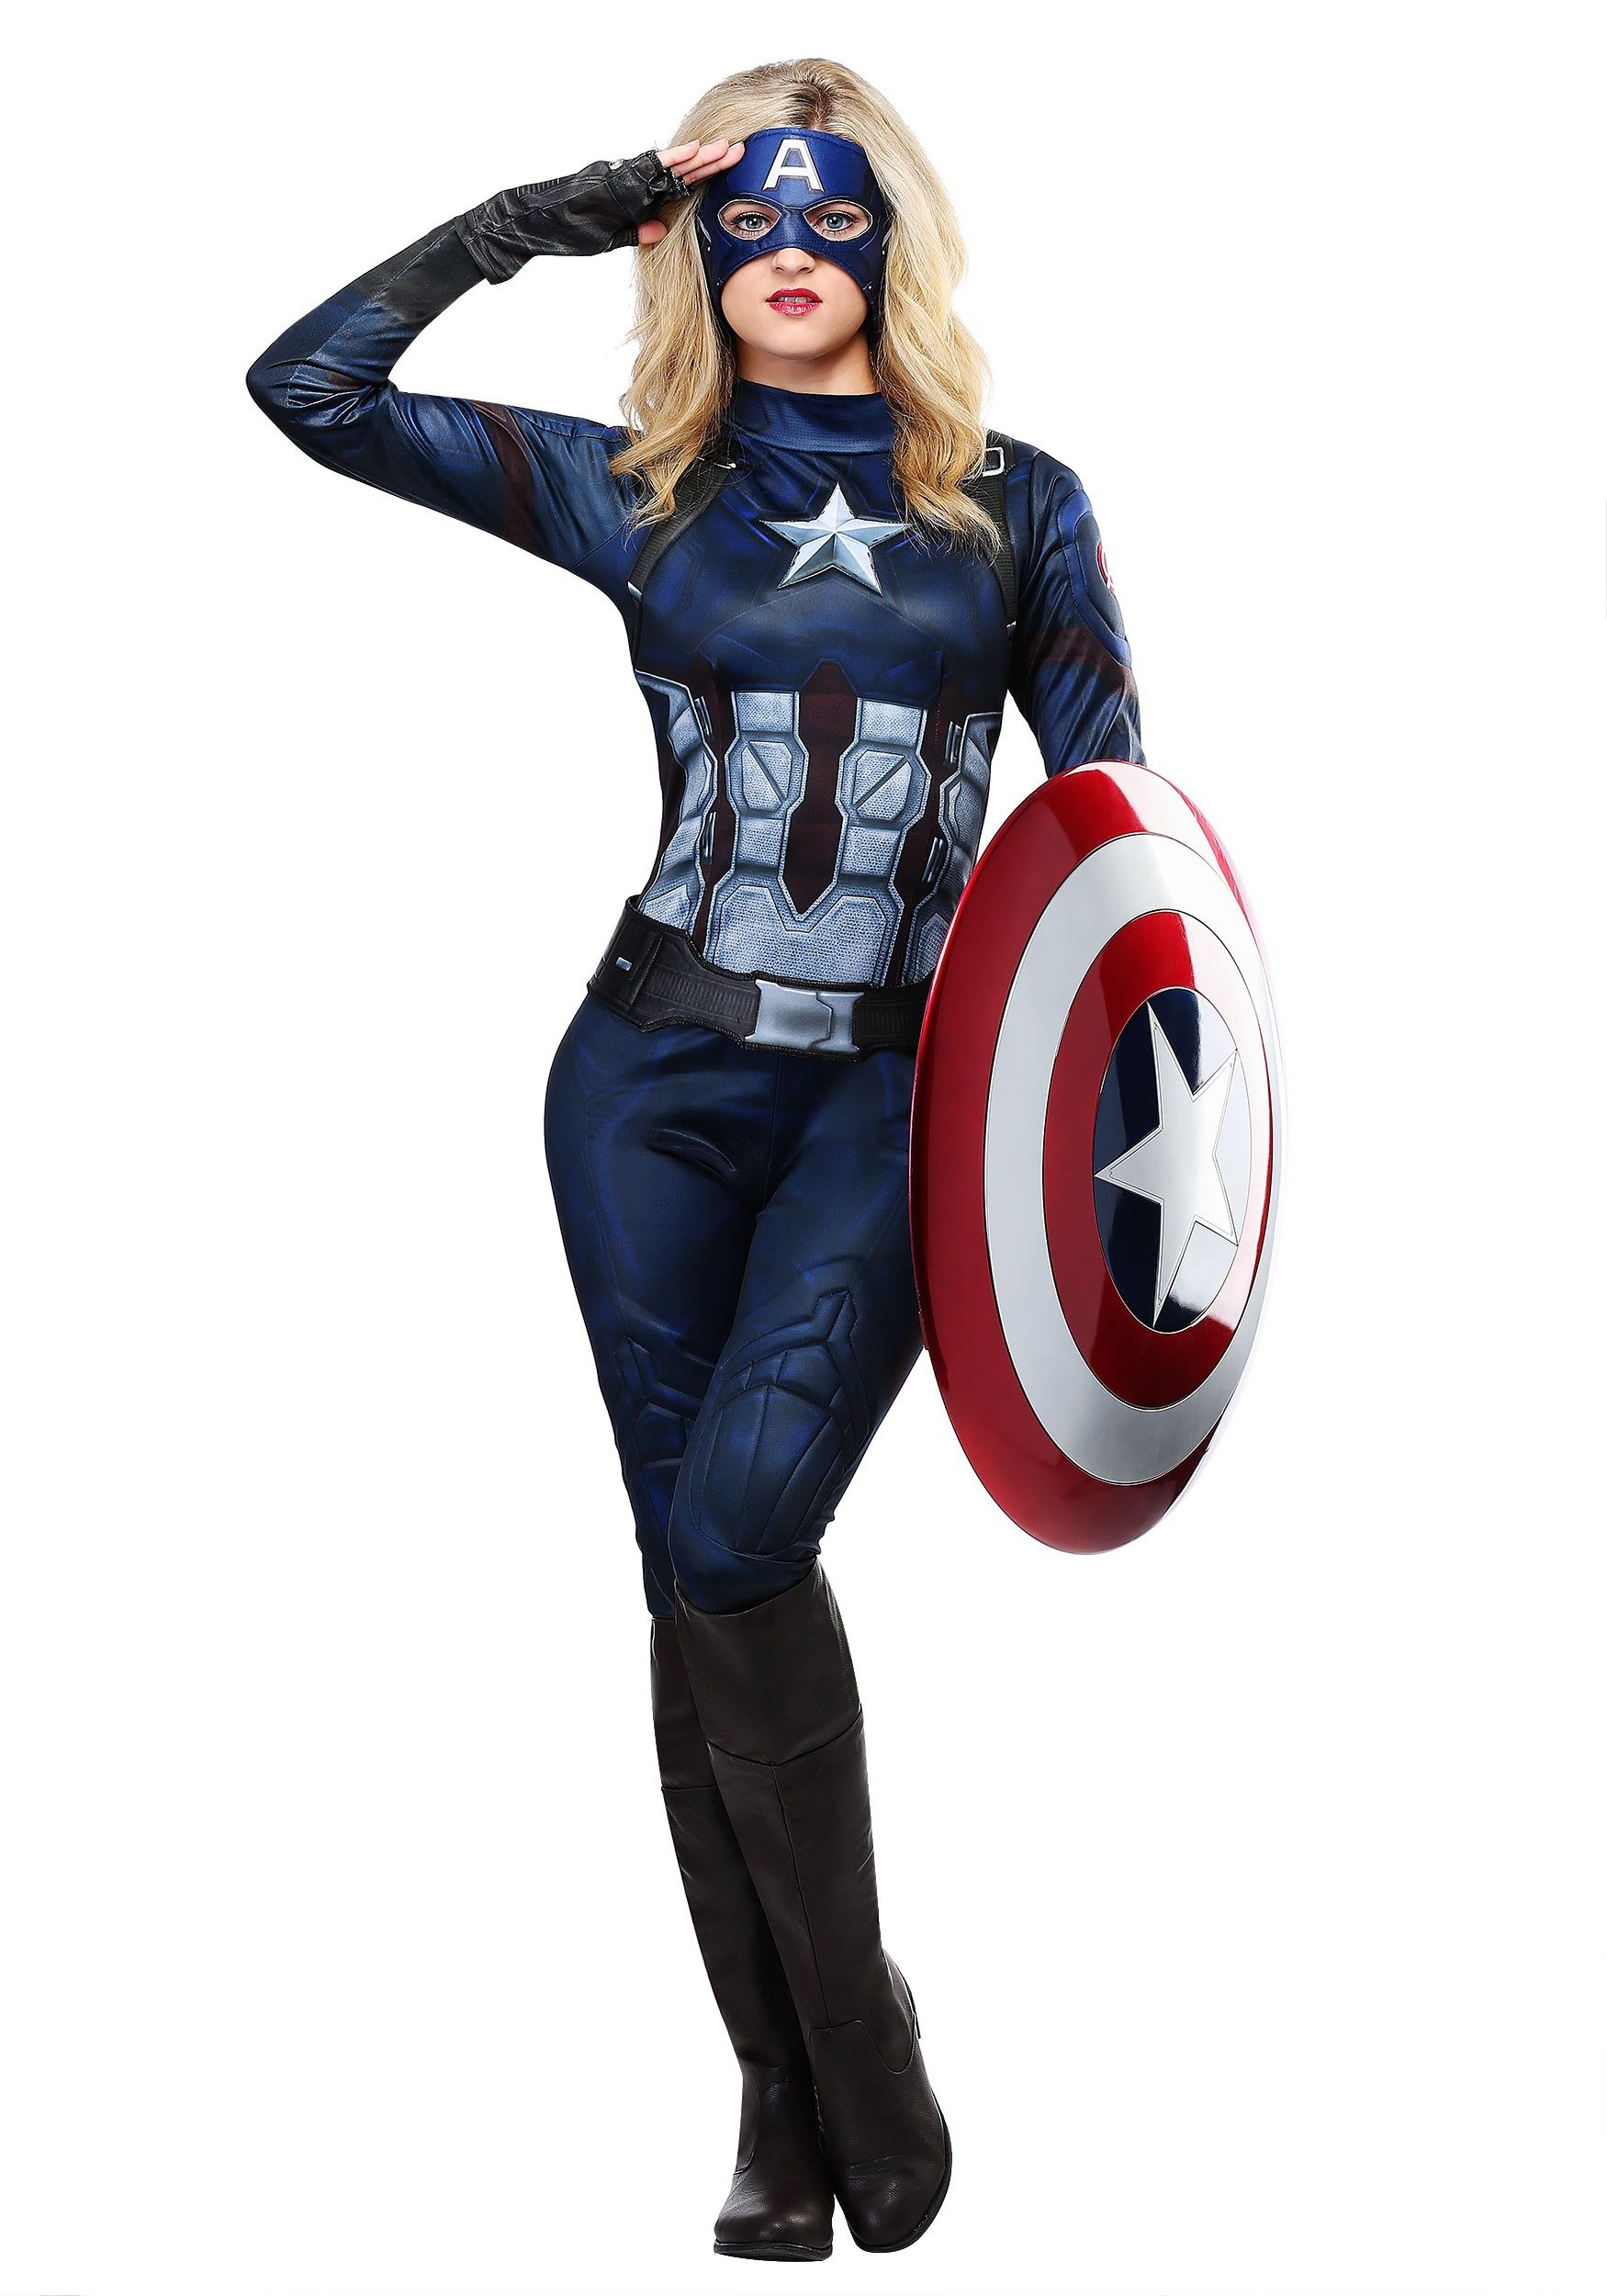 White and Blue adult or running-costume or cosplay Captain America Avengers Tutu-Red child